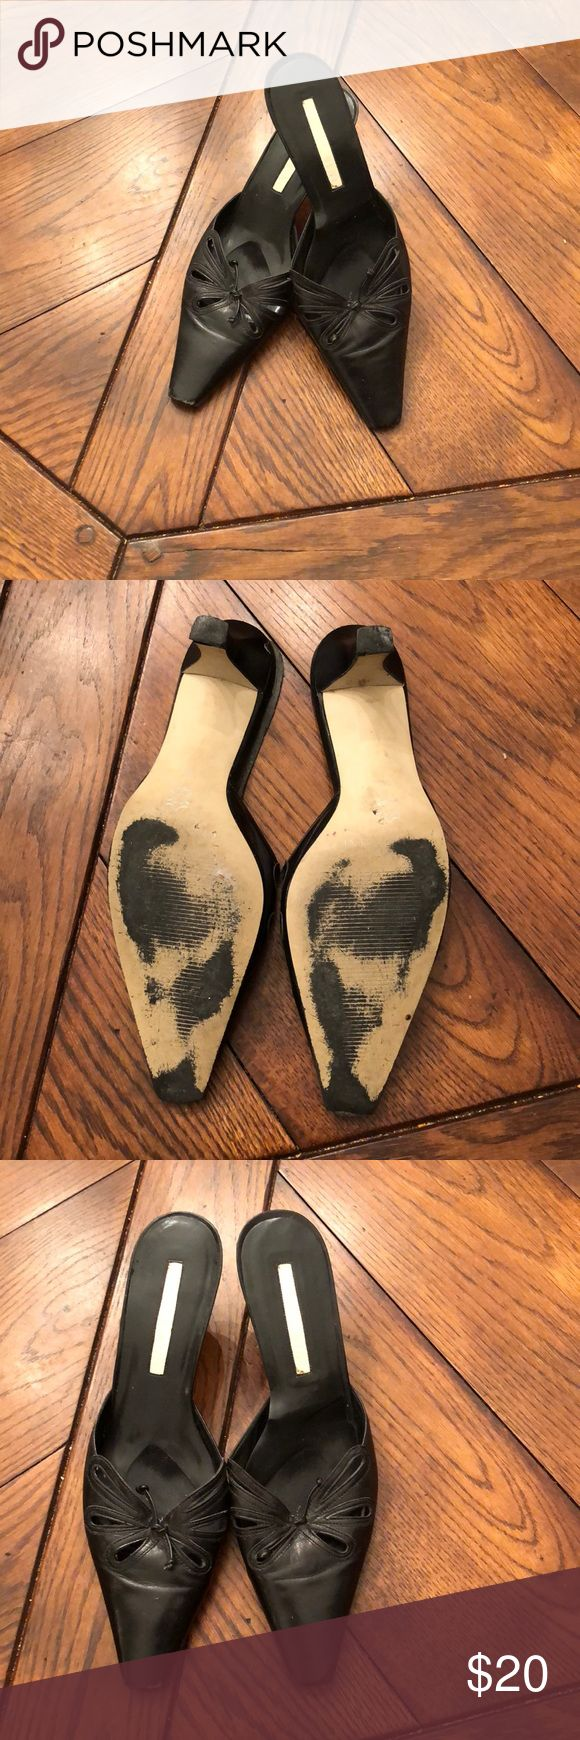 ❄️Just In❄️ Gianni Bini Mules Black Gianni Bini mules in size 9. Purchase by 4:00 pm CT for same day shipping. Gianni Bini Shoes Mules & Clogs